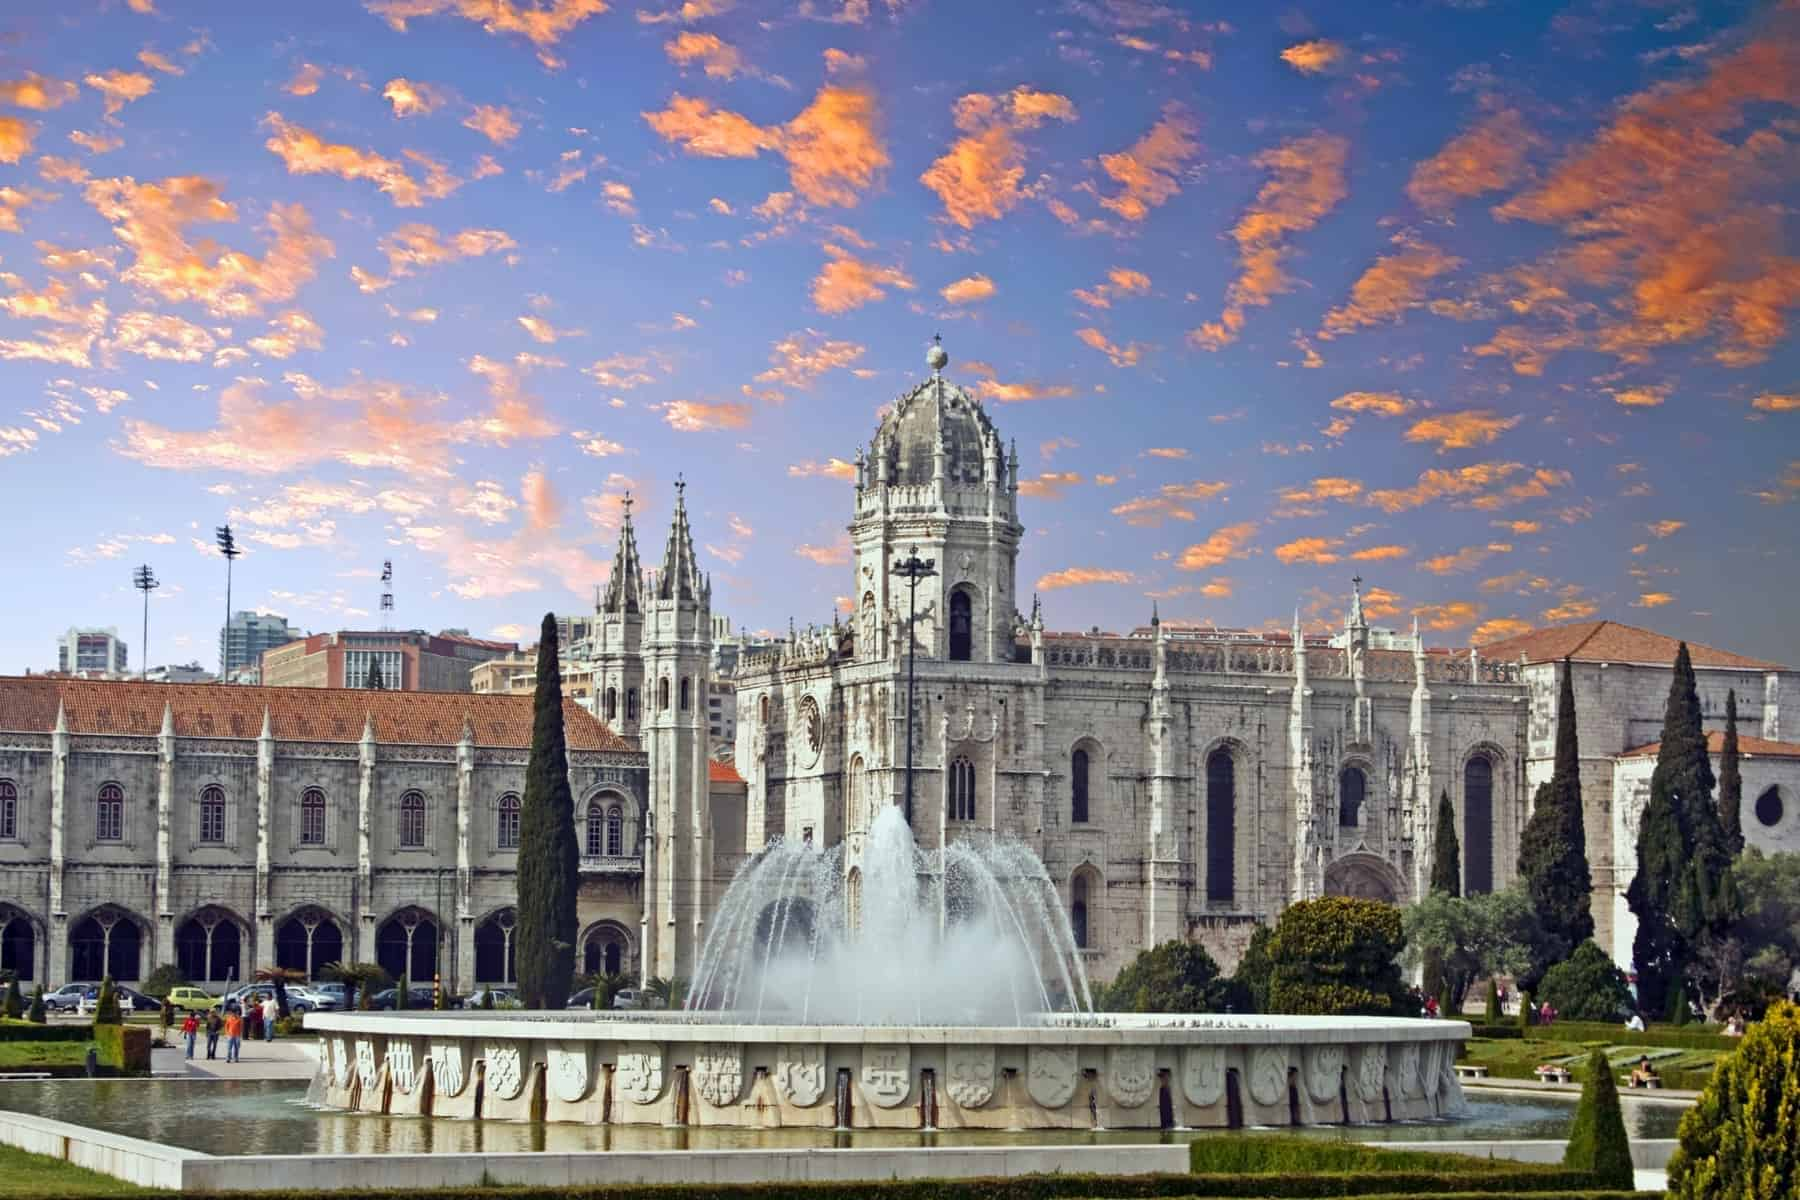 Jeronimos-monastery-in-Lisbon-Portugal-at-sunset